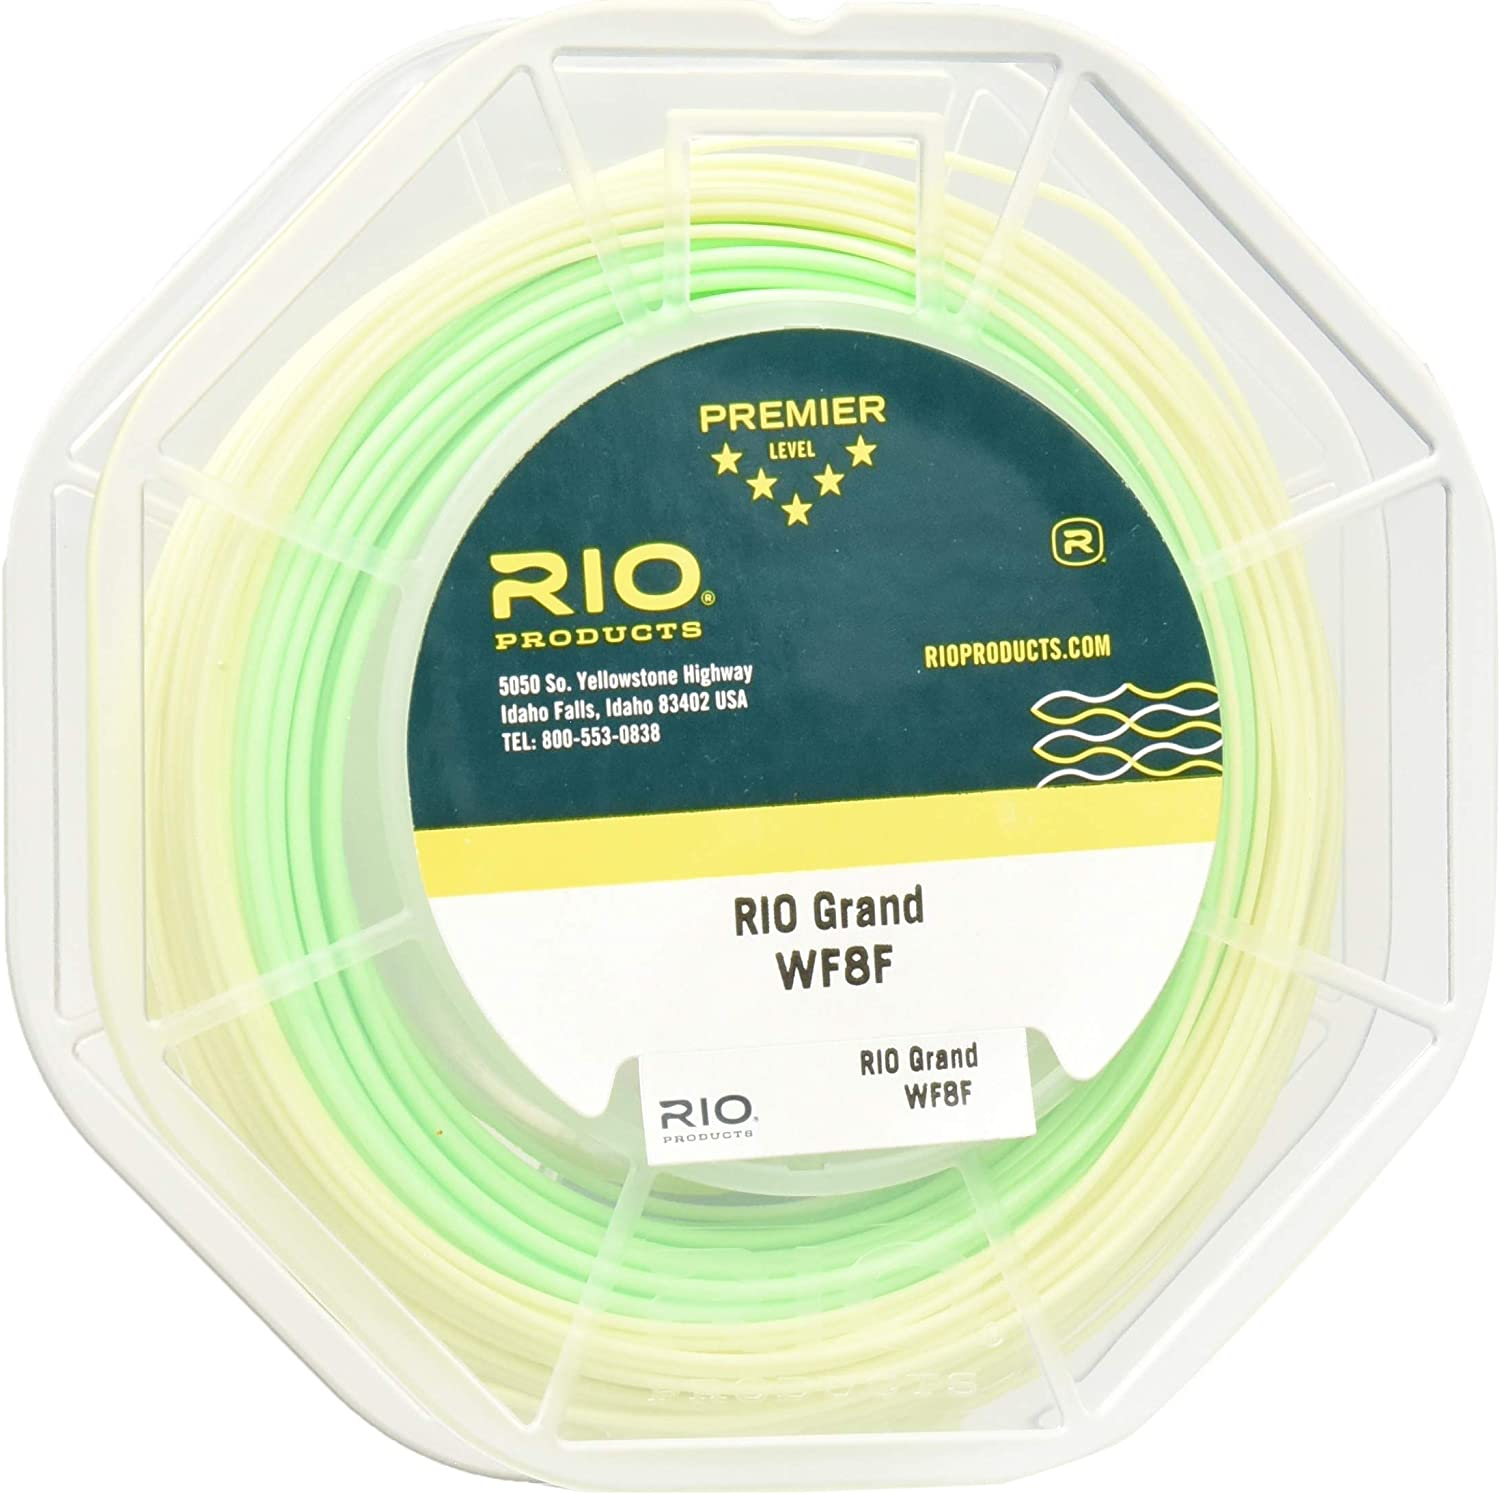 RIO Products Fly Line Rio Grand Wf4F Pale Green/Lt. Yellow, Pale-Green-Lt.-Yellow